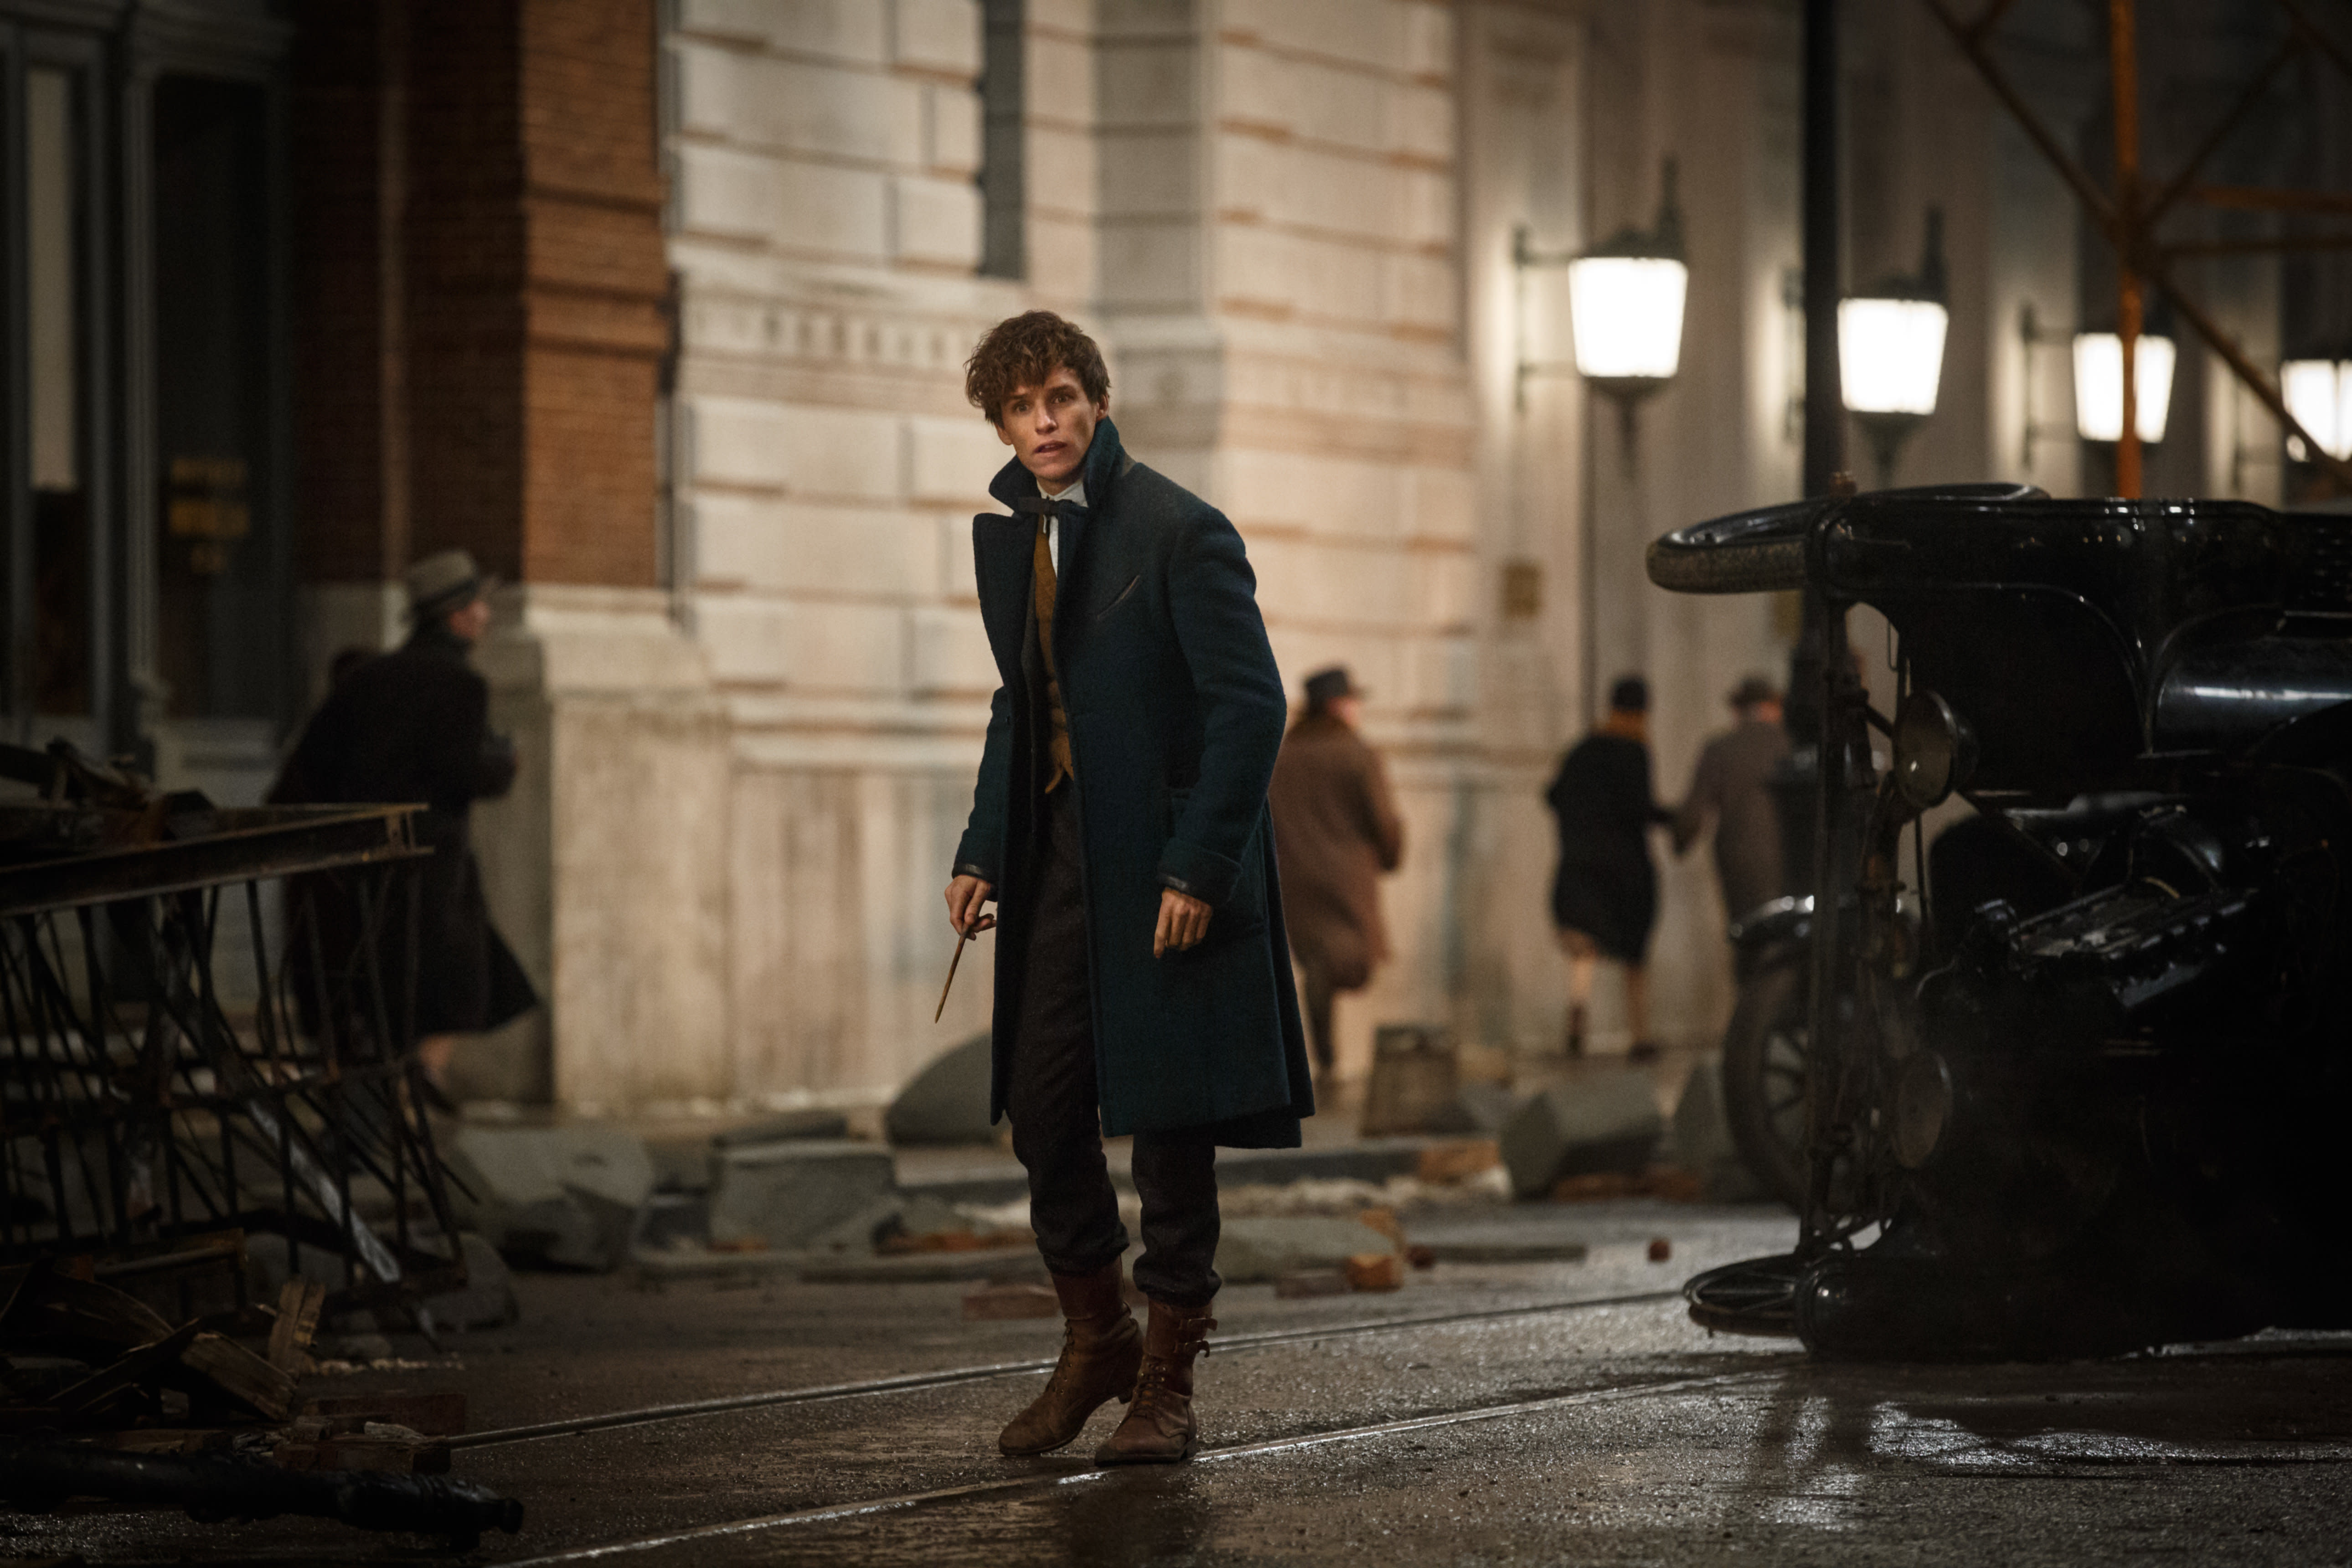 FB WB Newt Scamander Advances with his Wand